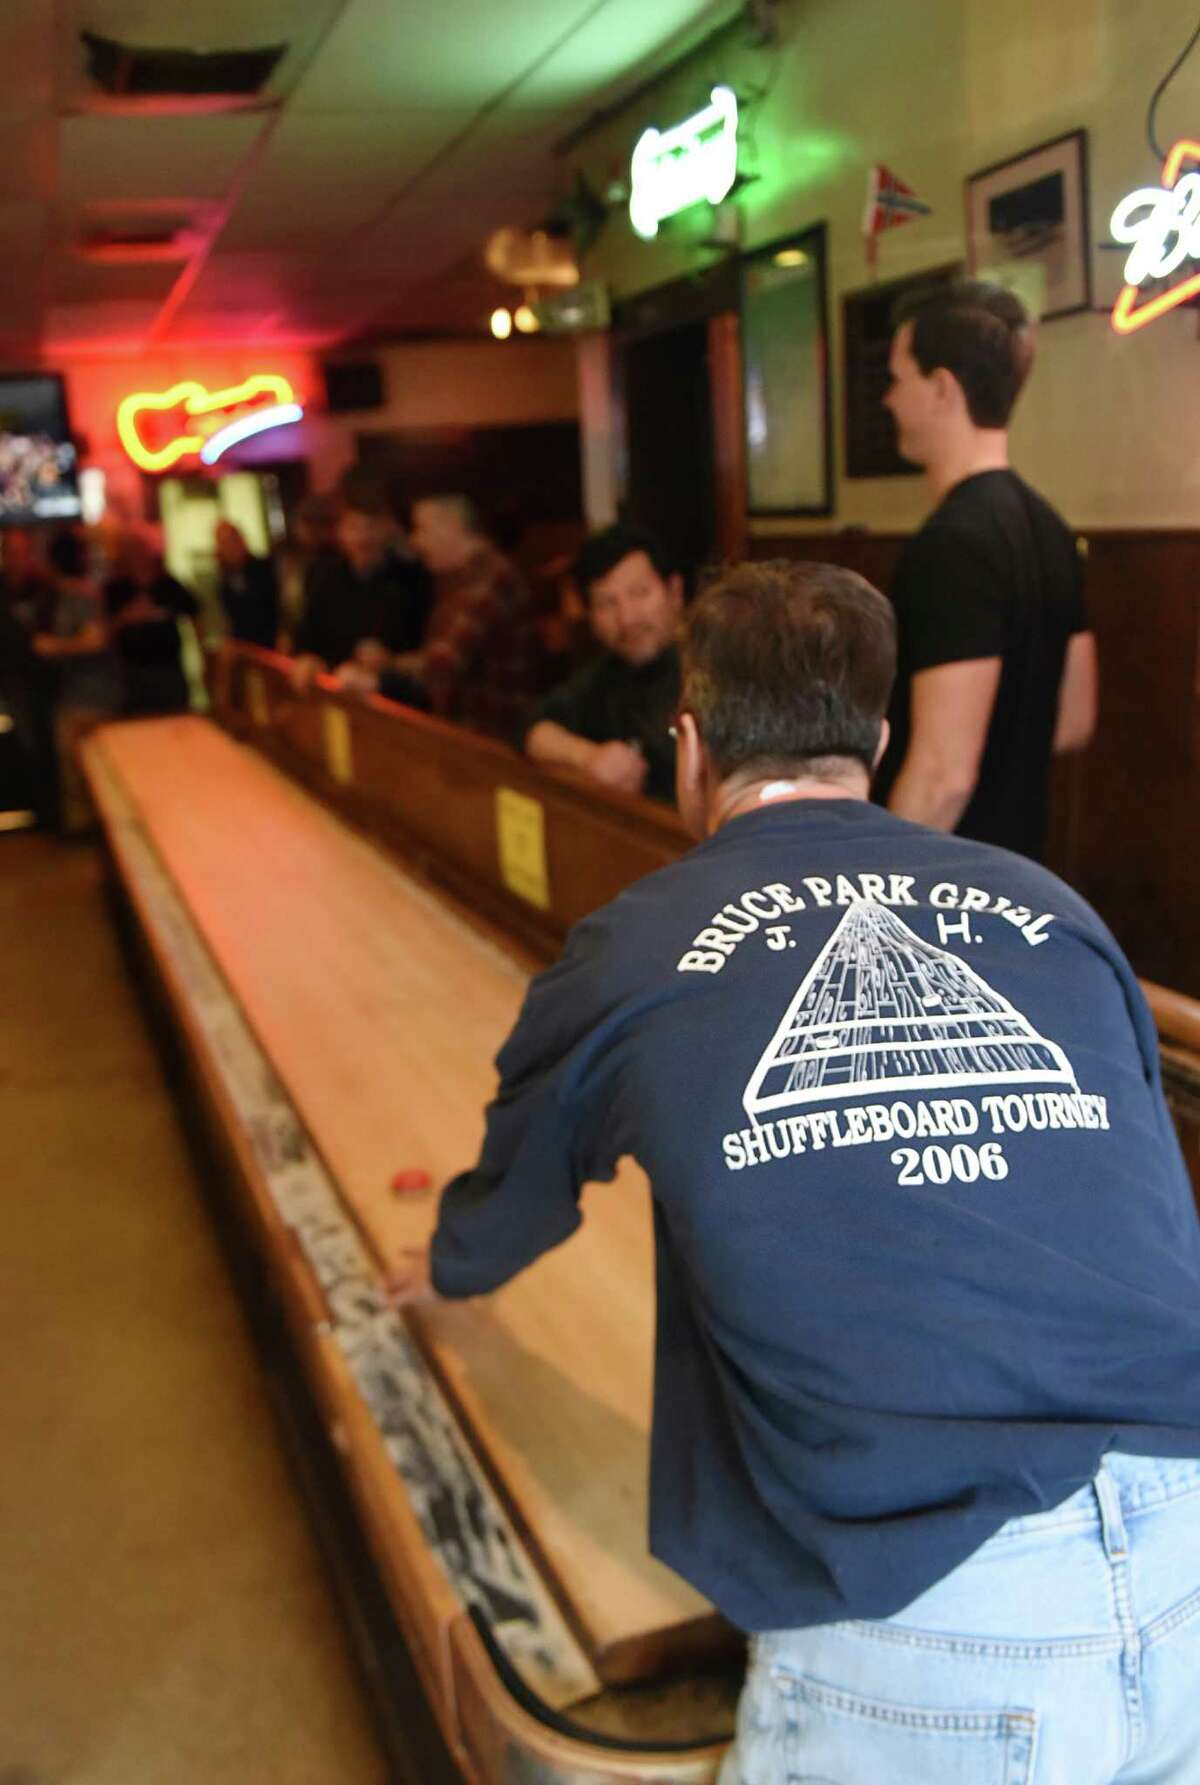 Jim Kavanagh, a lawyer from Greenwich, wears his suffleboard tournament 2006 shirt while shooting a puck during this year's annual shuffleboard tournament at Bruce Park Grill in Greenwich, Conn. Sunday, Feb. 28, 2016. The annual tournament, which began in 1977, draws a lot of attention as 24 teams battle it out over three weekends on the 22-foot-long shuffleboard table. First- and second-place teams get a small cash prize and a portion of proceeds from the tournament go to local groups and charities. A shuffleboard champion will be crowned as the tournament continues next Sunday, March 6.